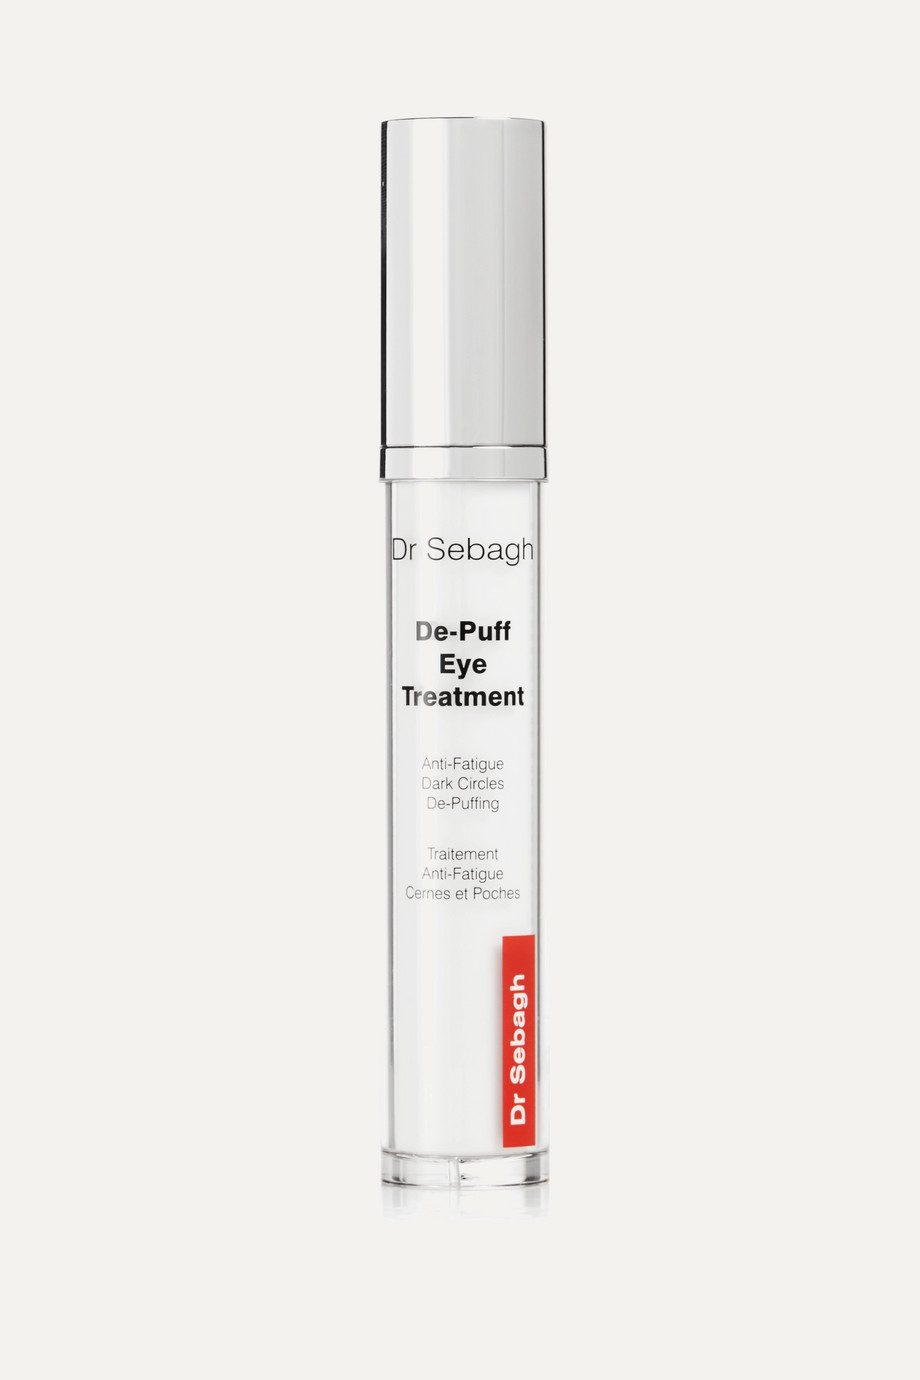 DR SEBAGH De-Puff Eye Treatment, 15ml